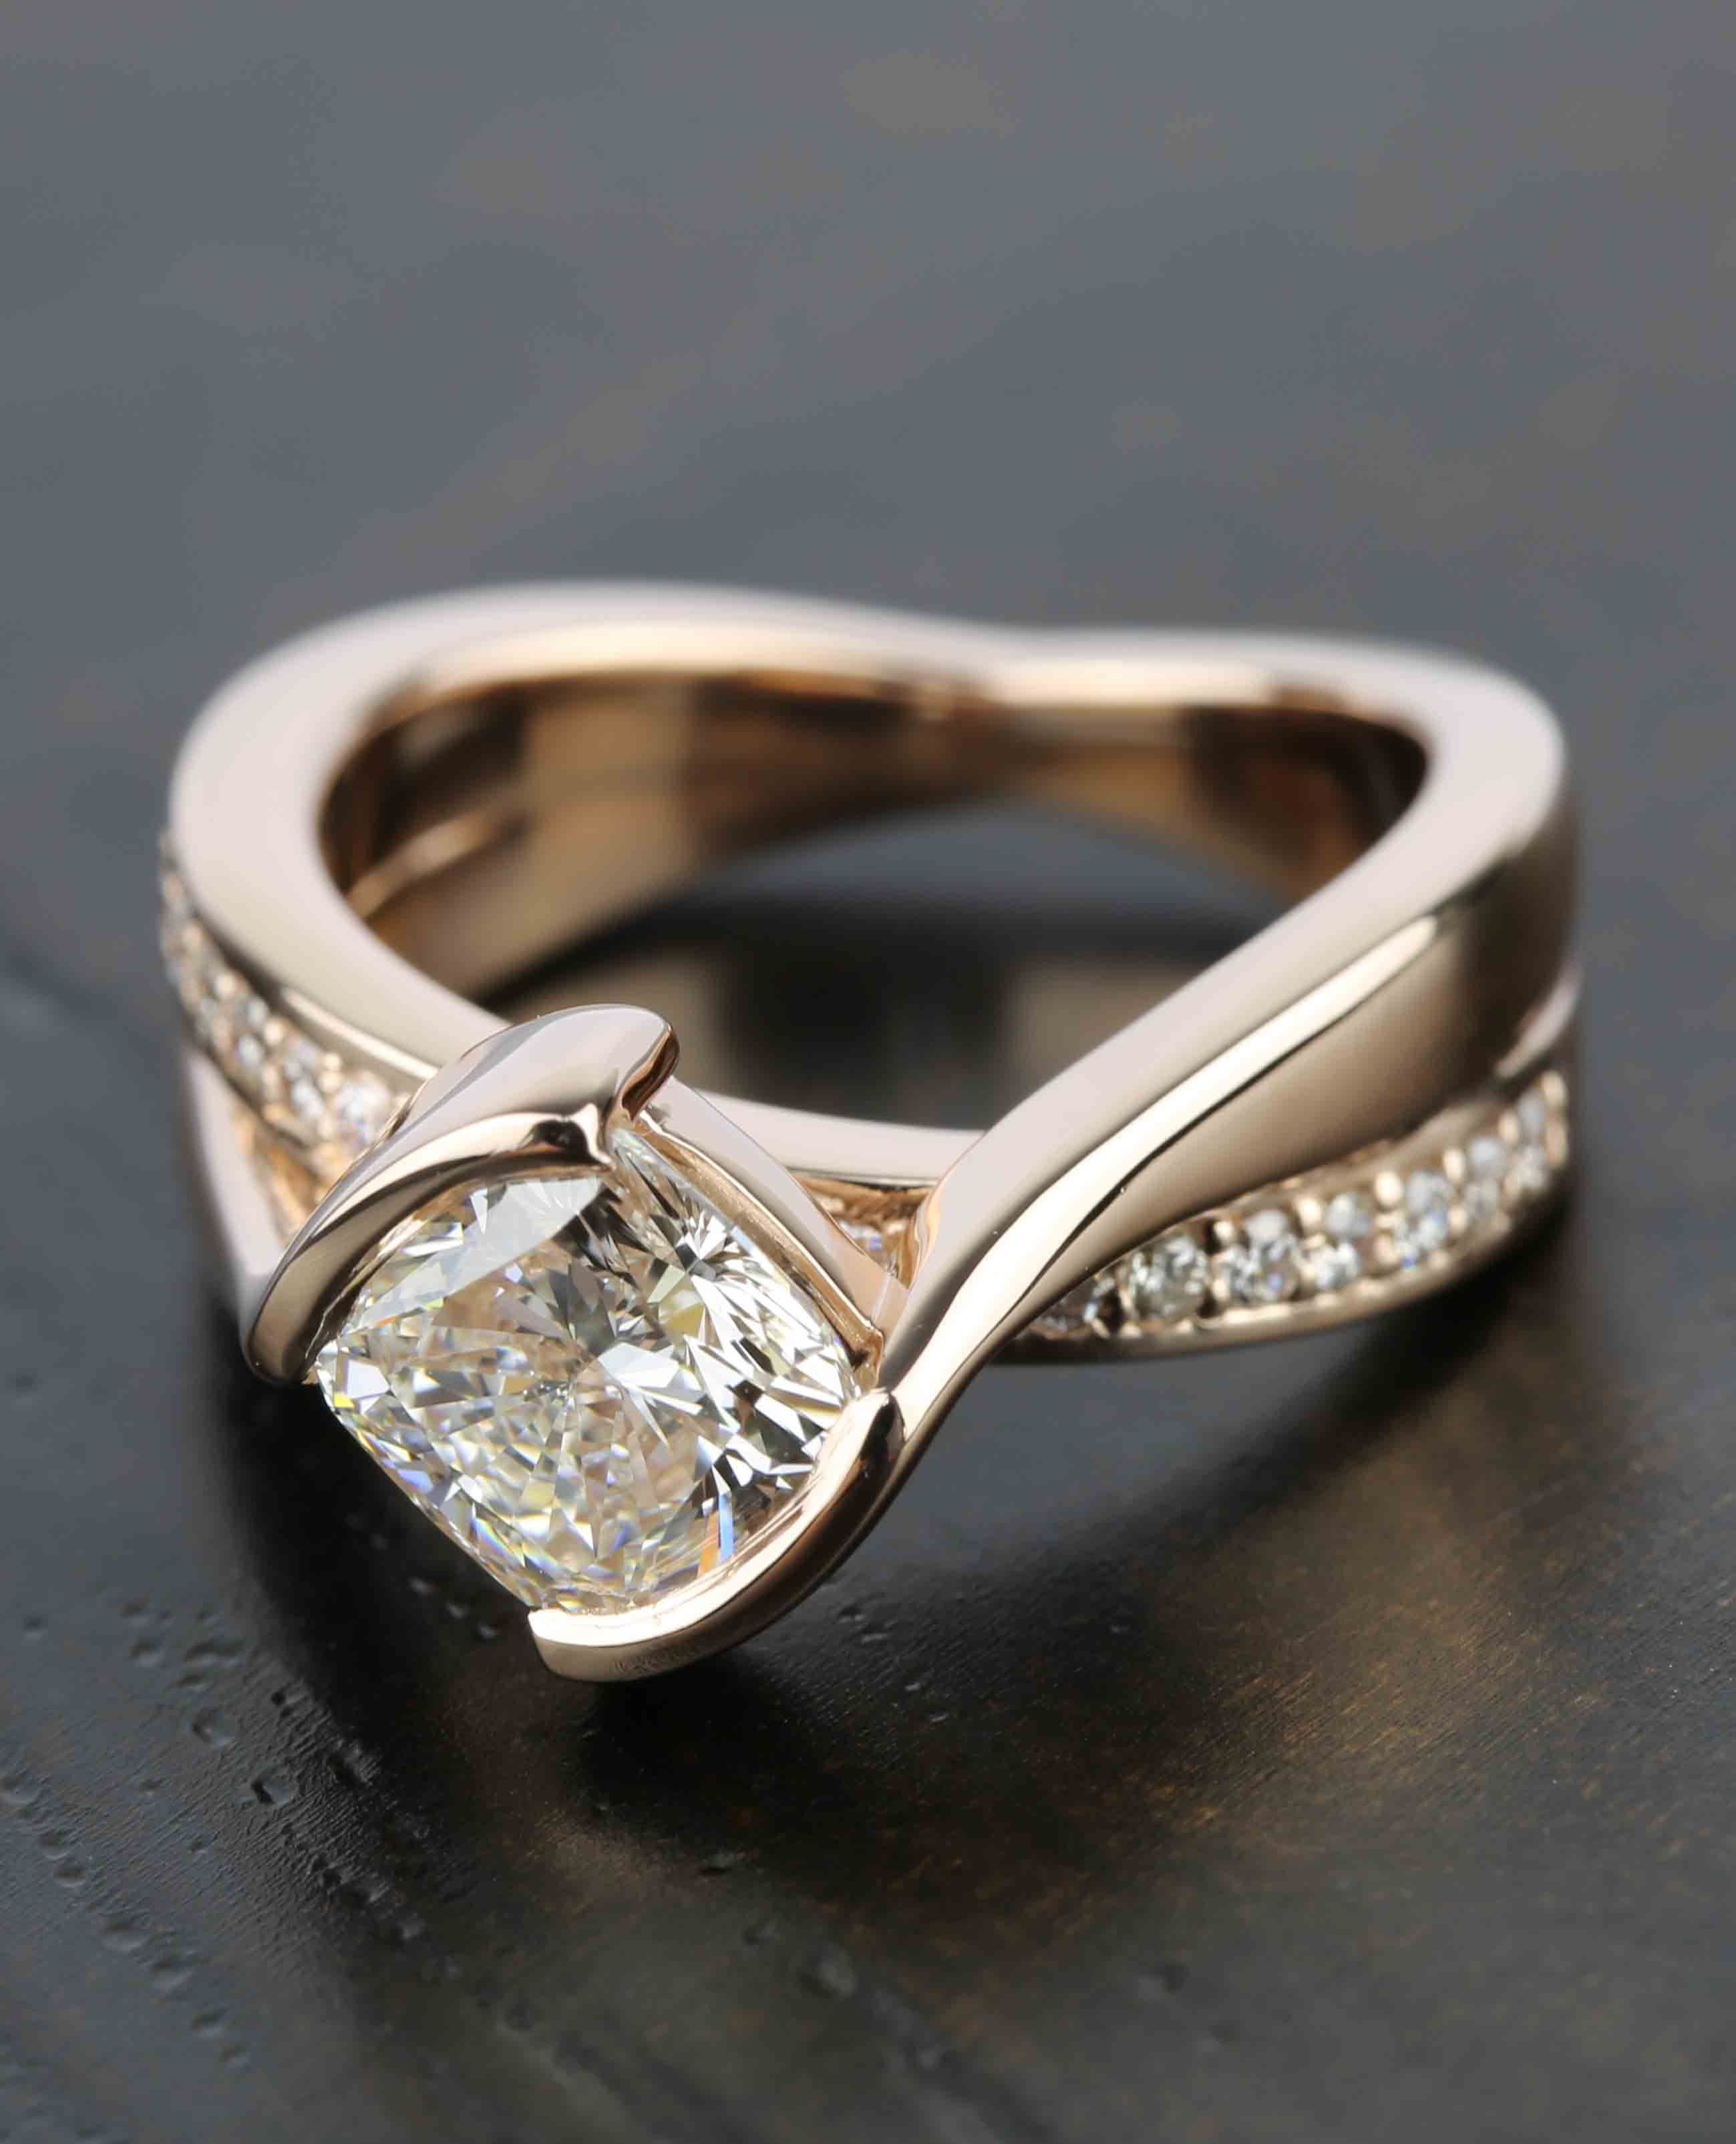 The epitome of vintage glamour this ring stands apart with a